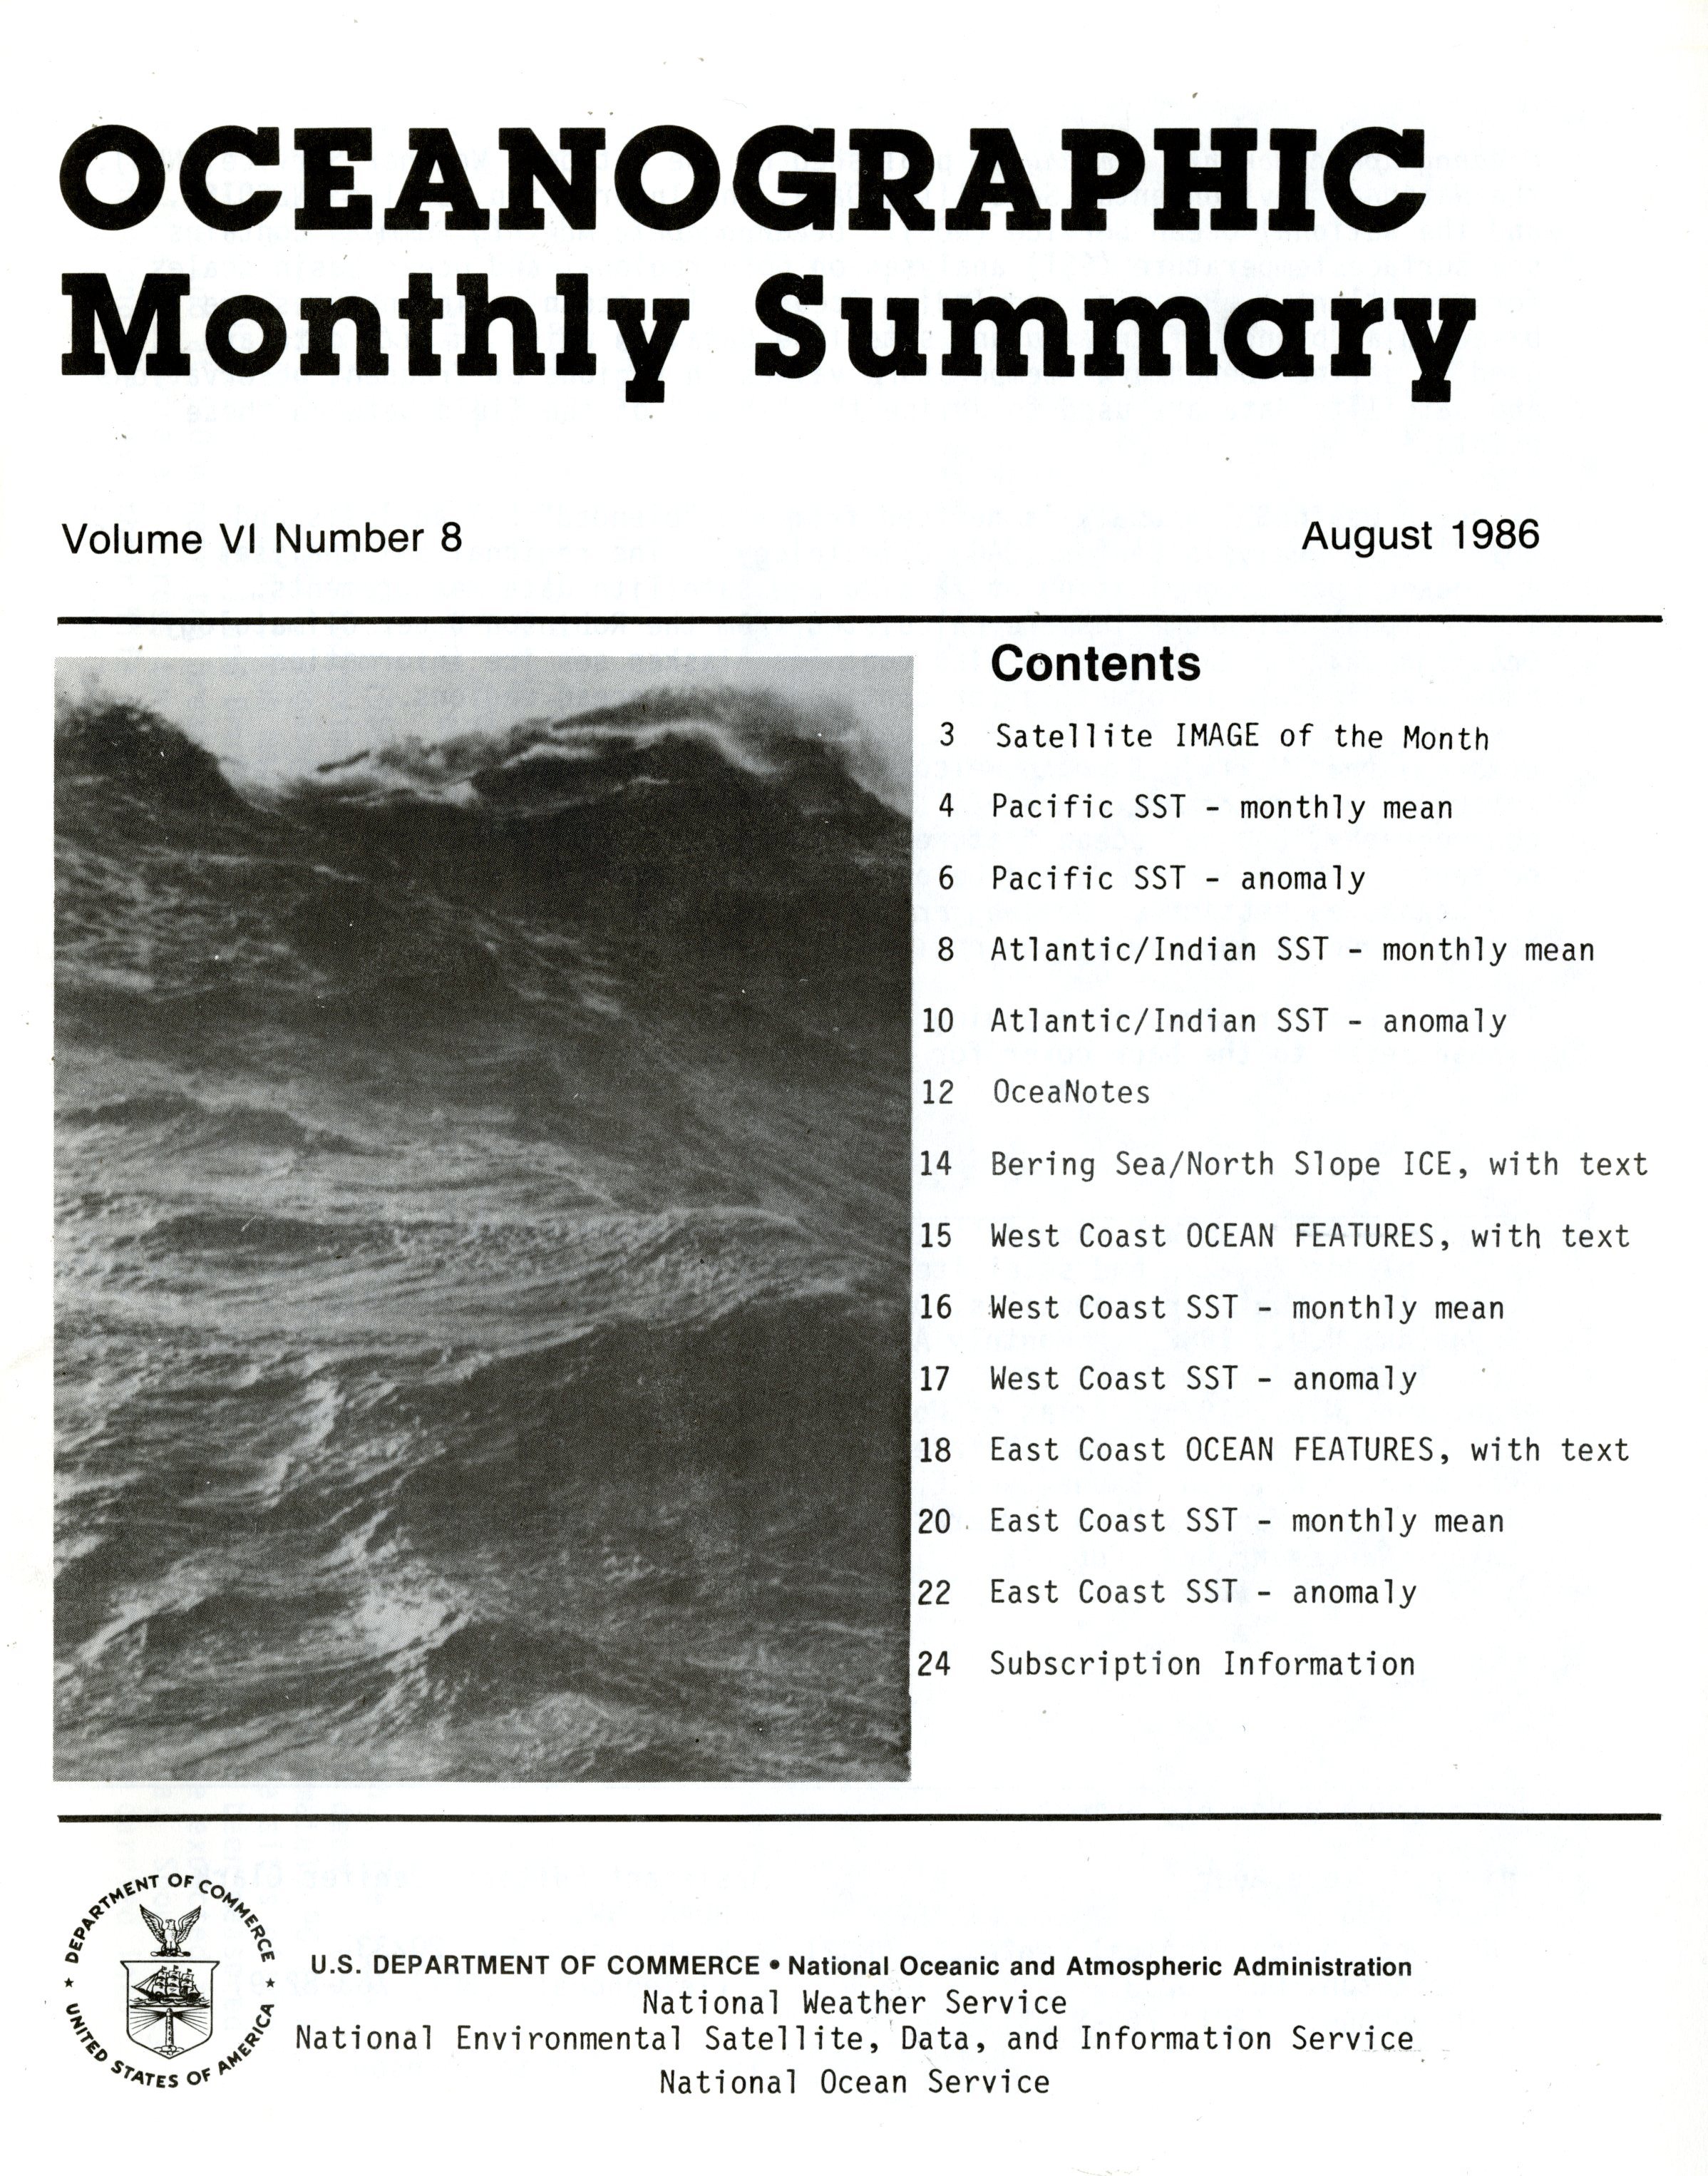 Sample cover page